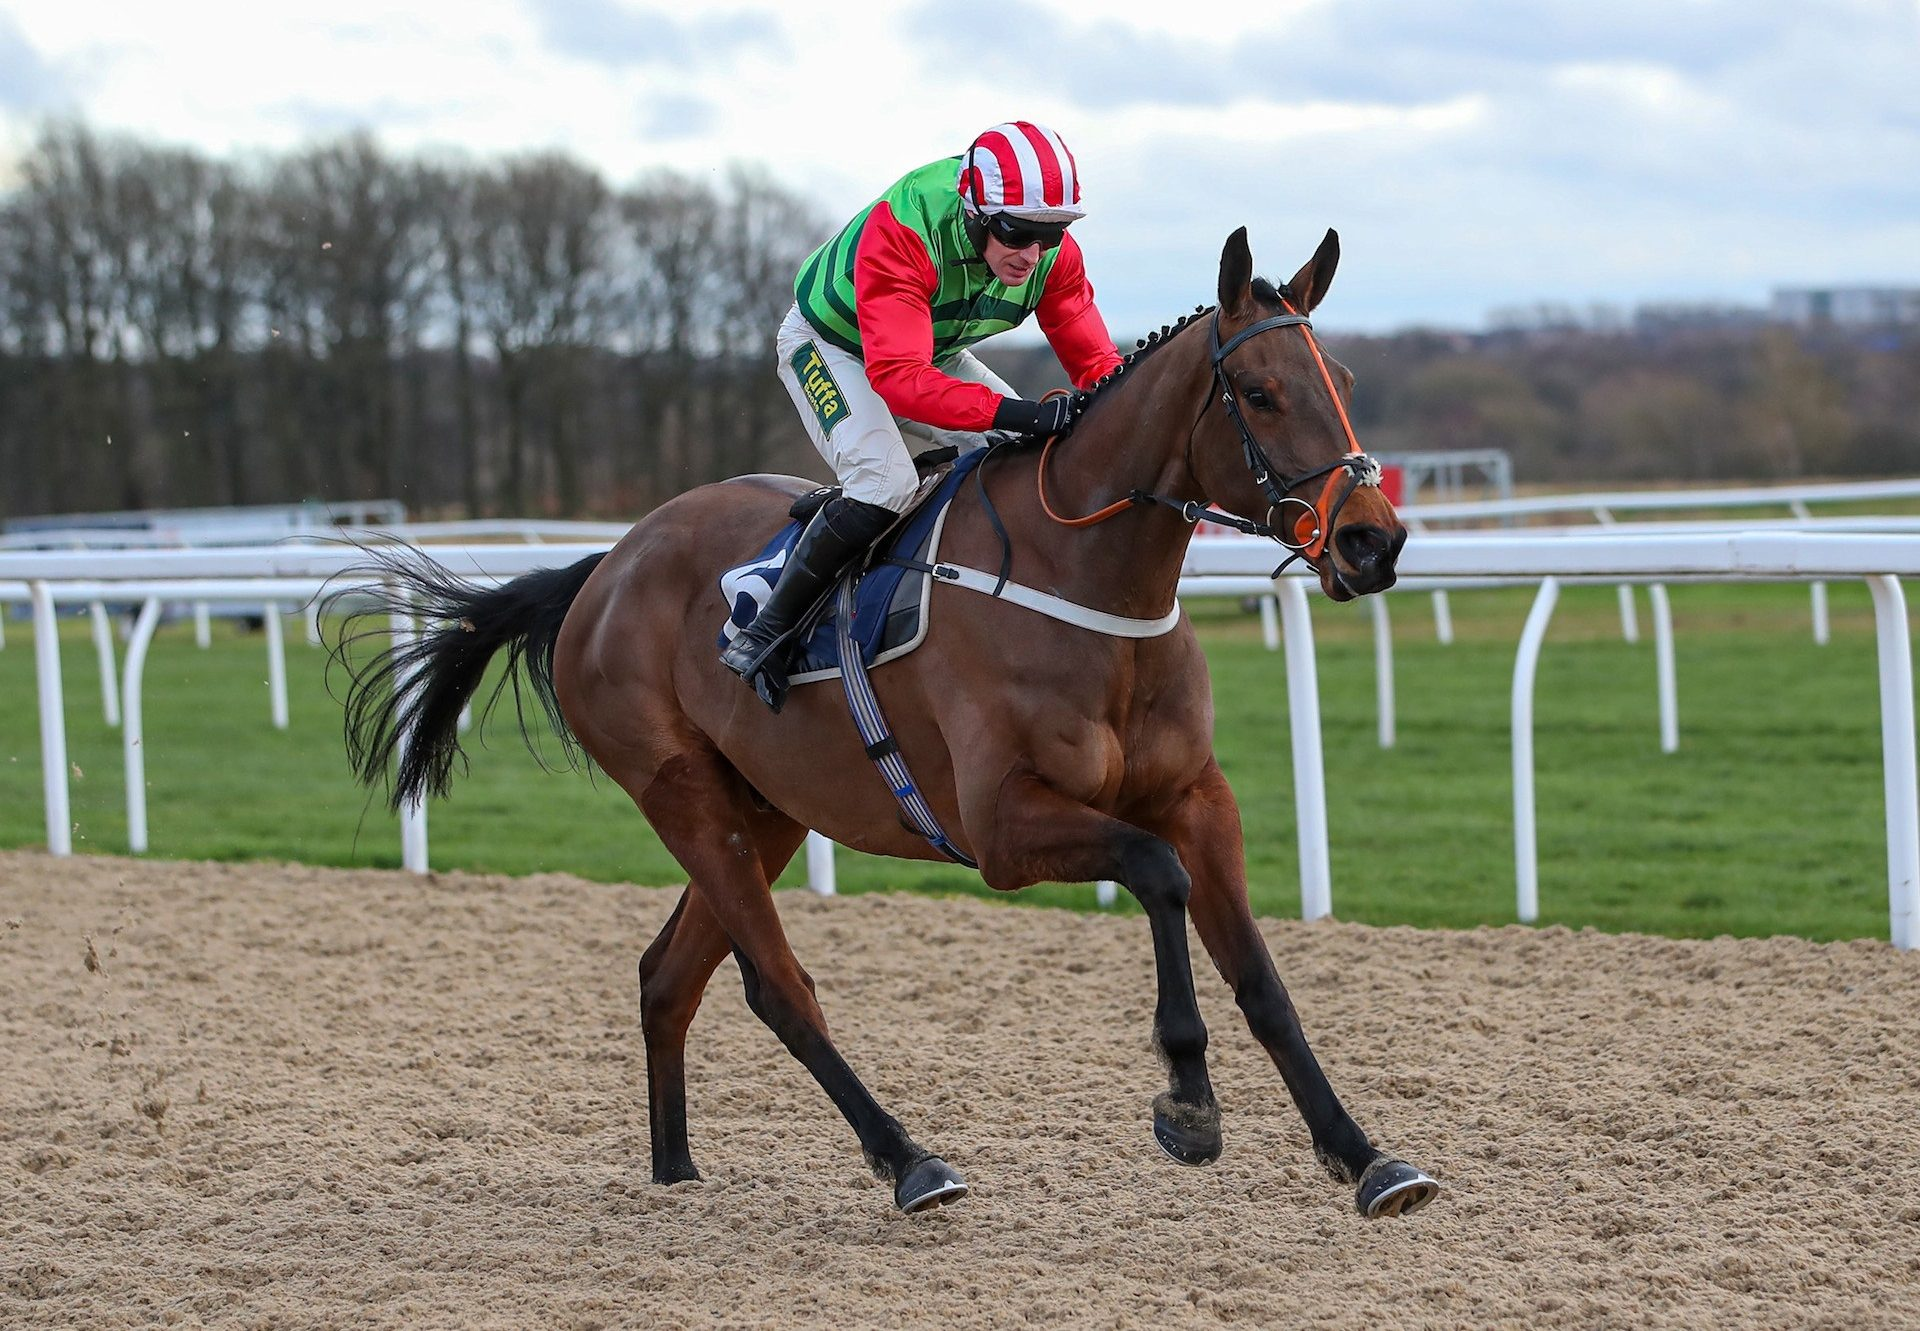 Tupelo Mississippi (Yeats) Wins Bumper At Newcastle